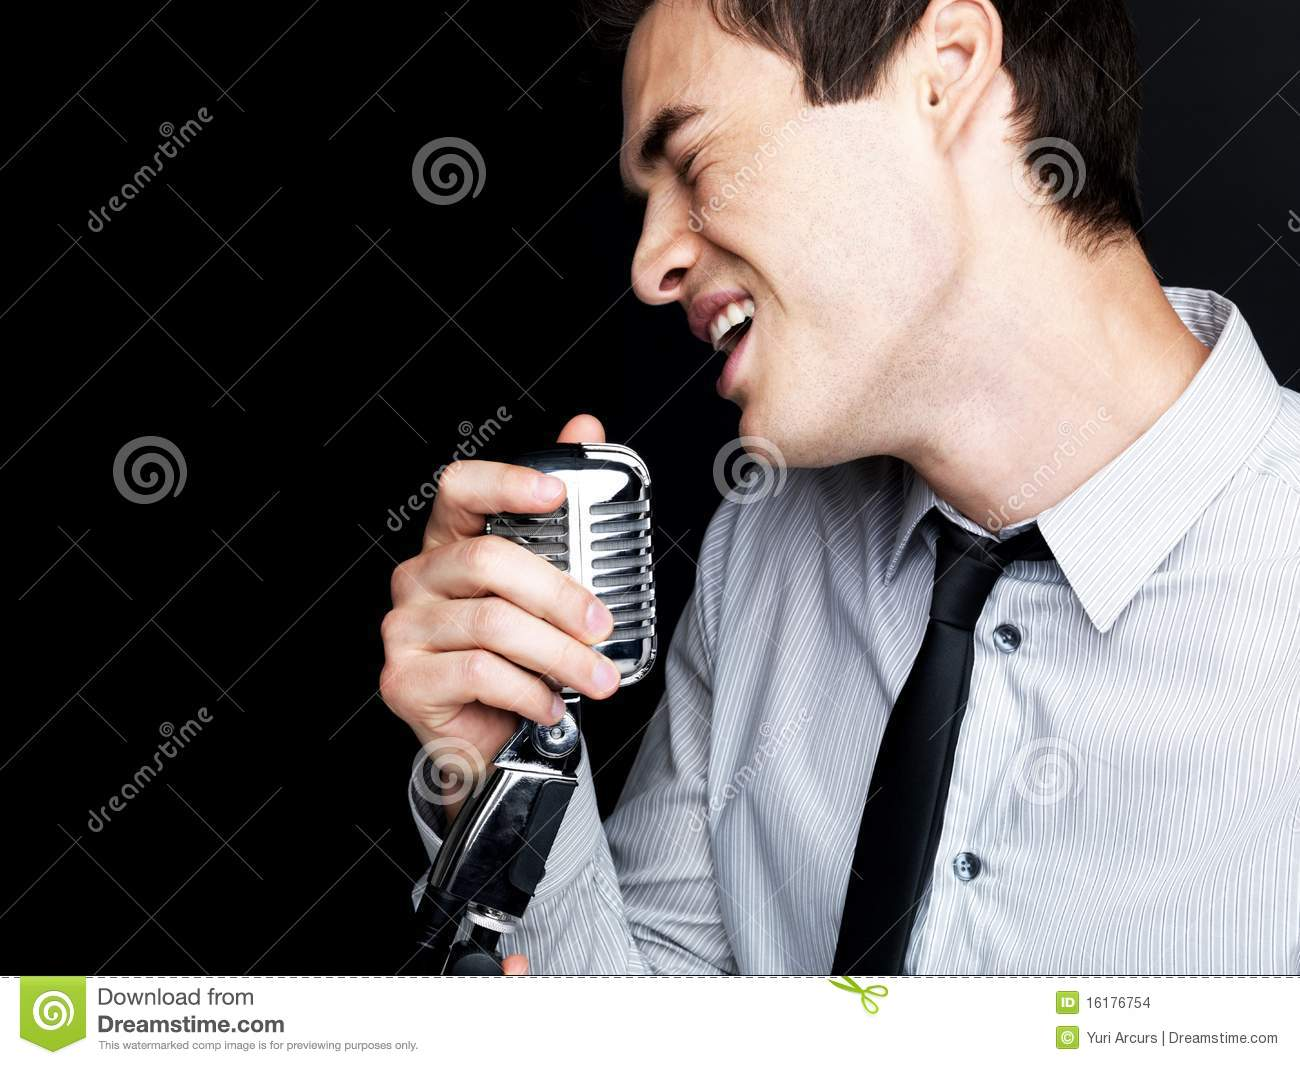 Male Singer Singing Into Old Fashioned Microphone Stock